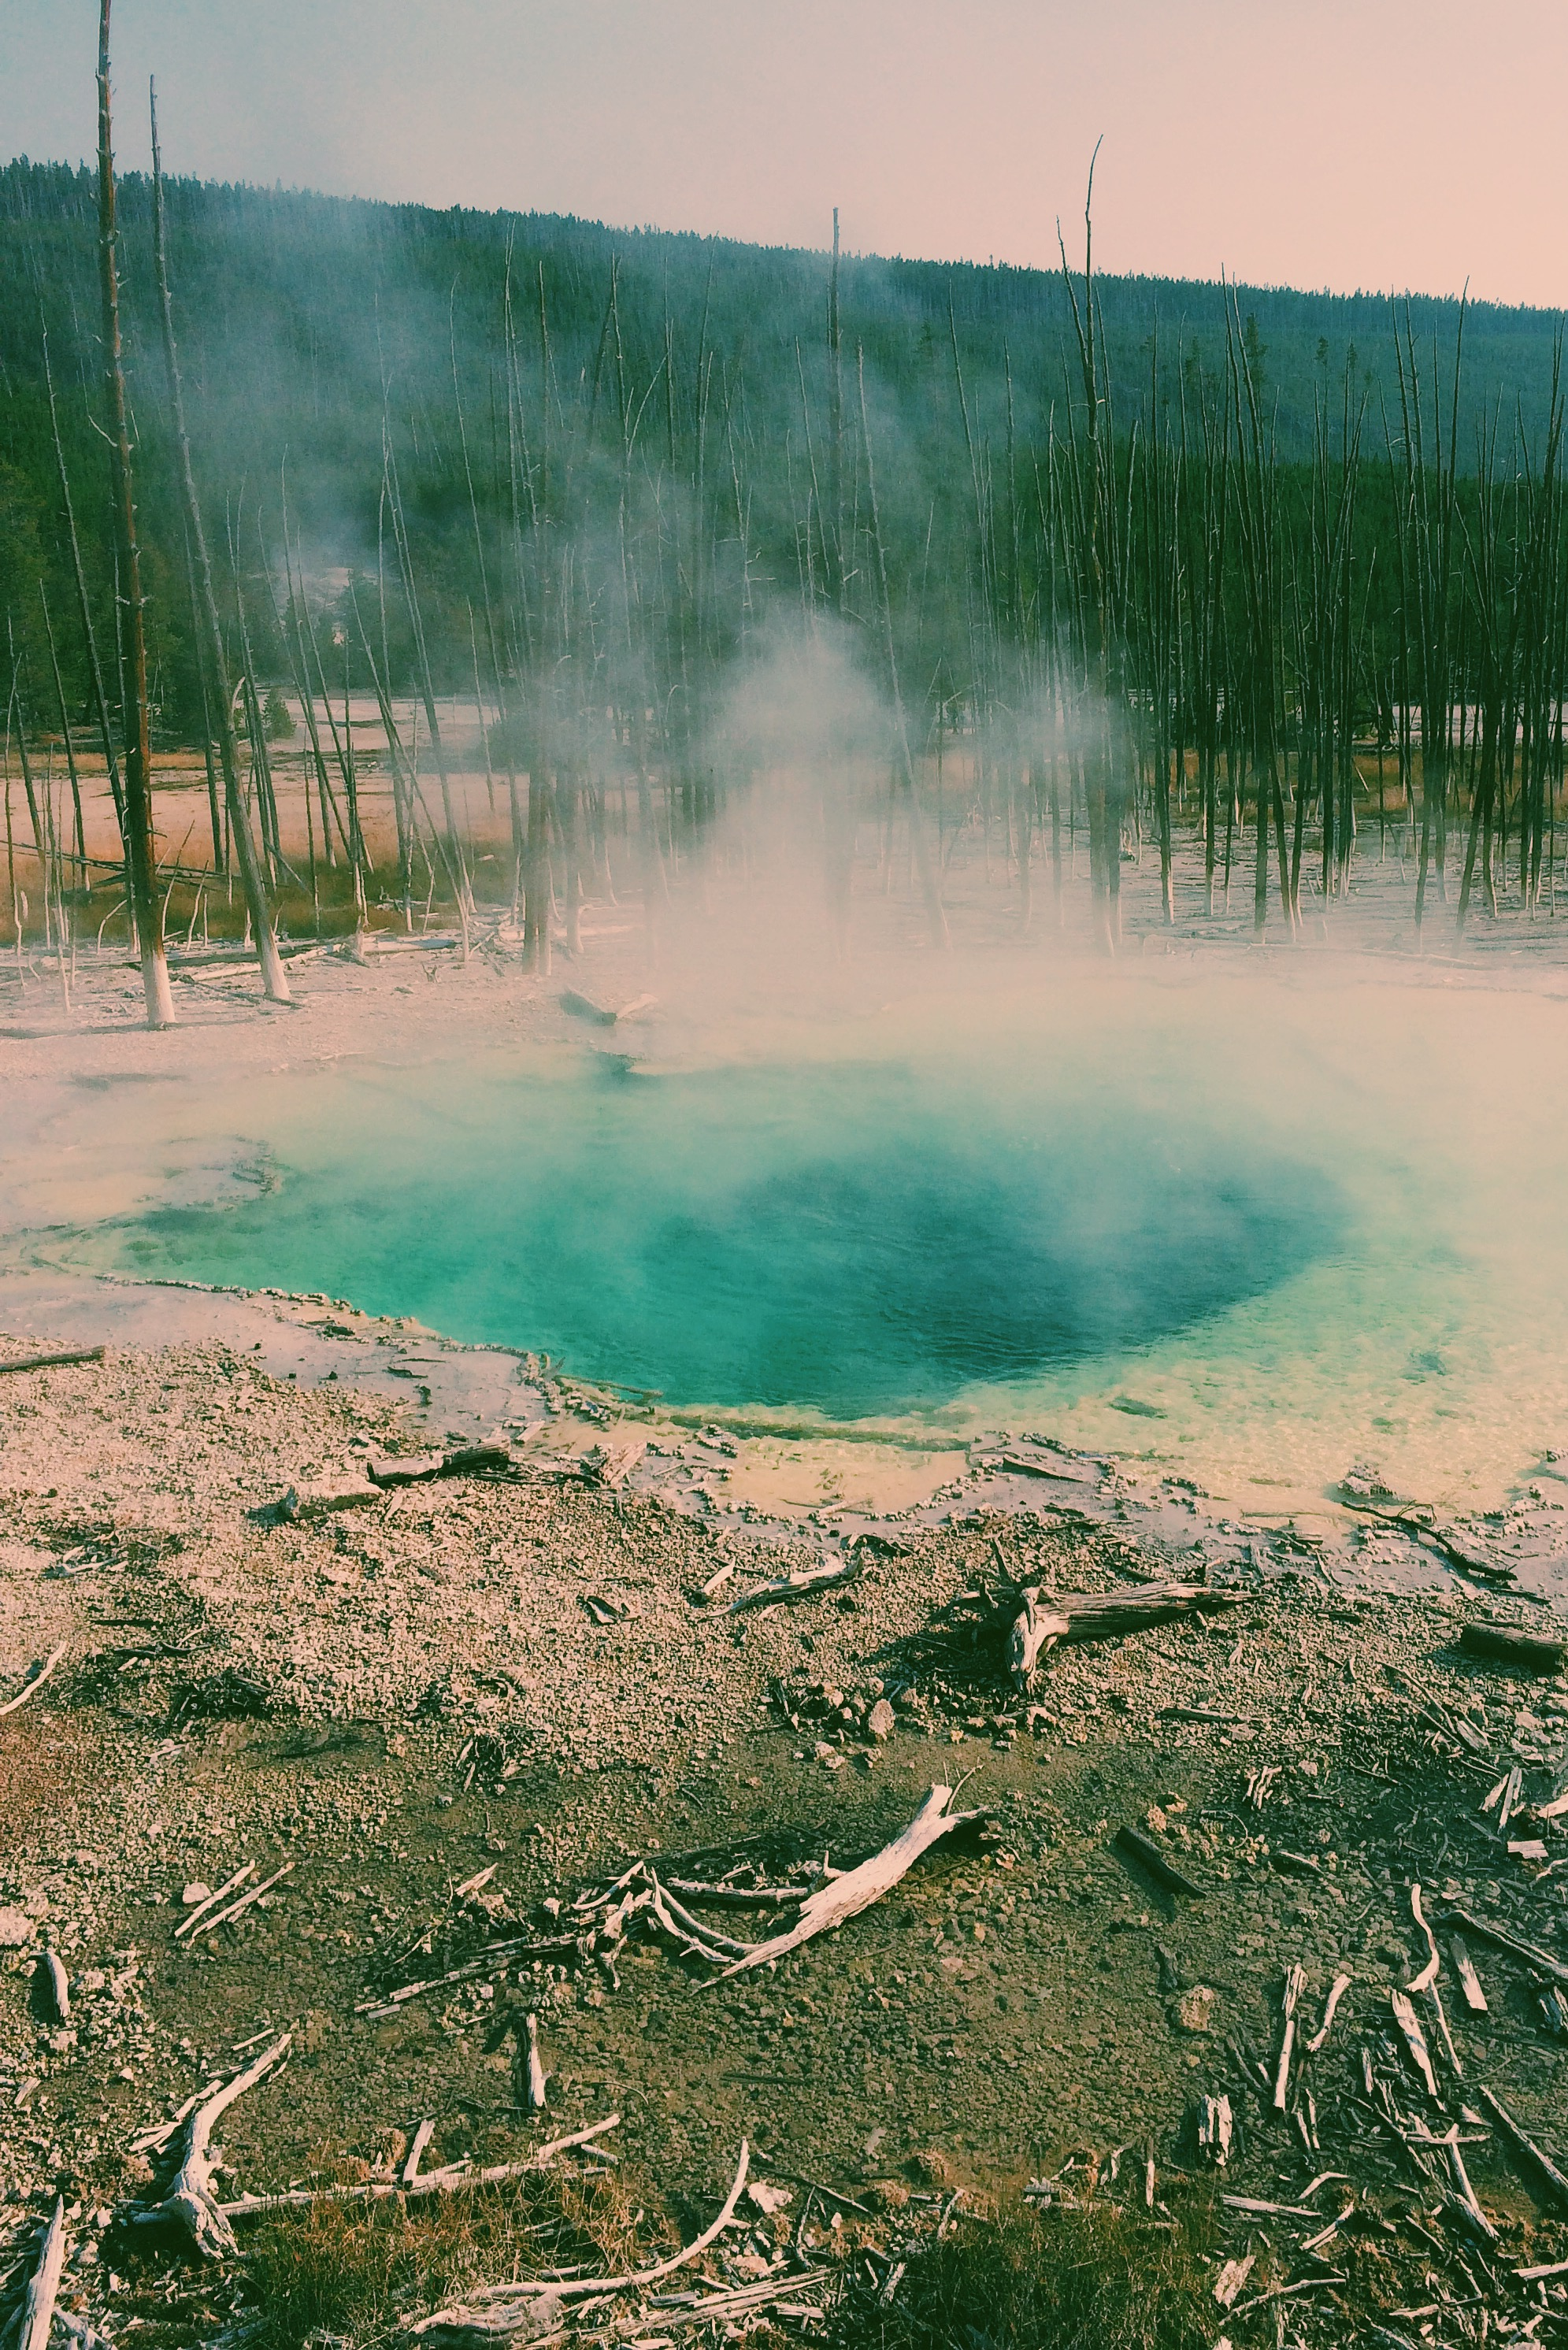 The geysers were so blue